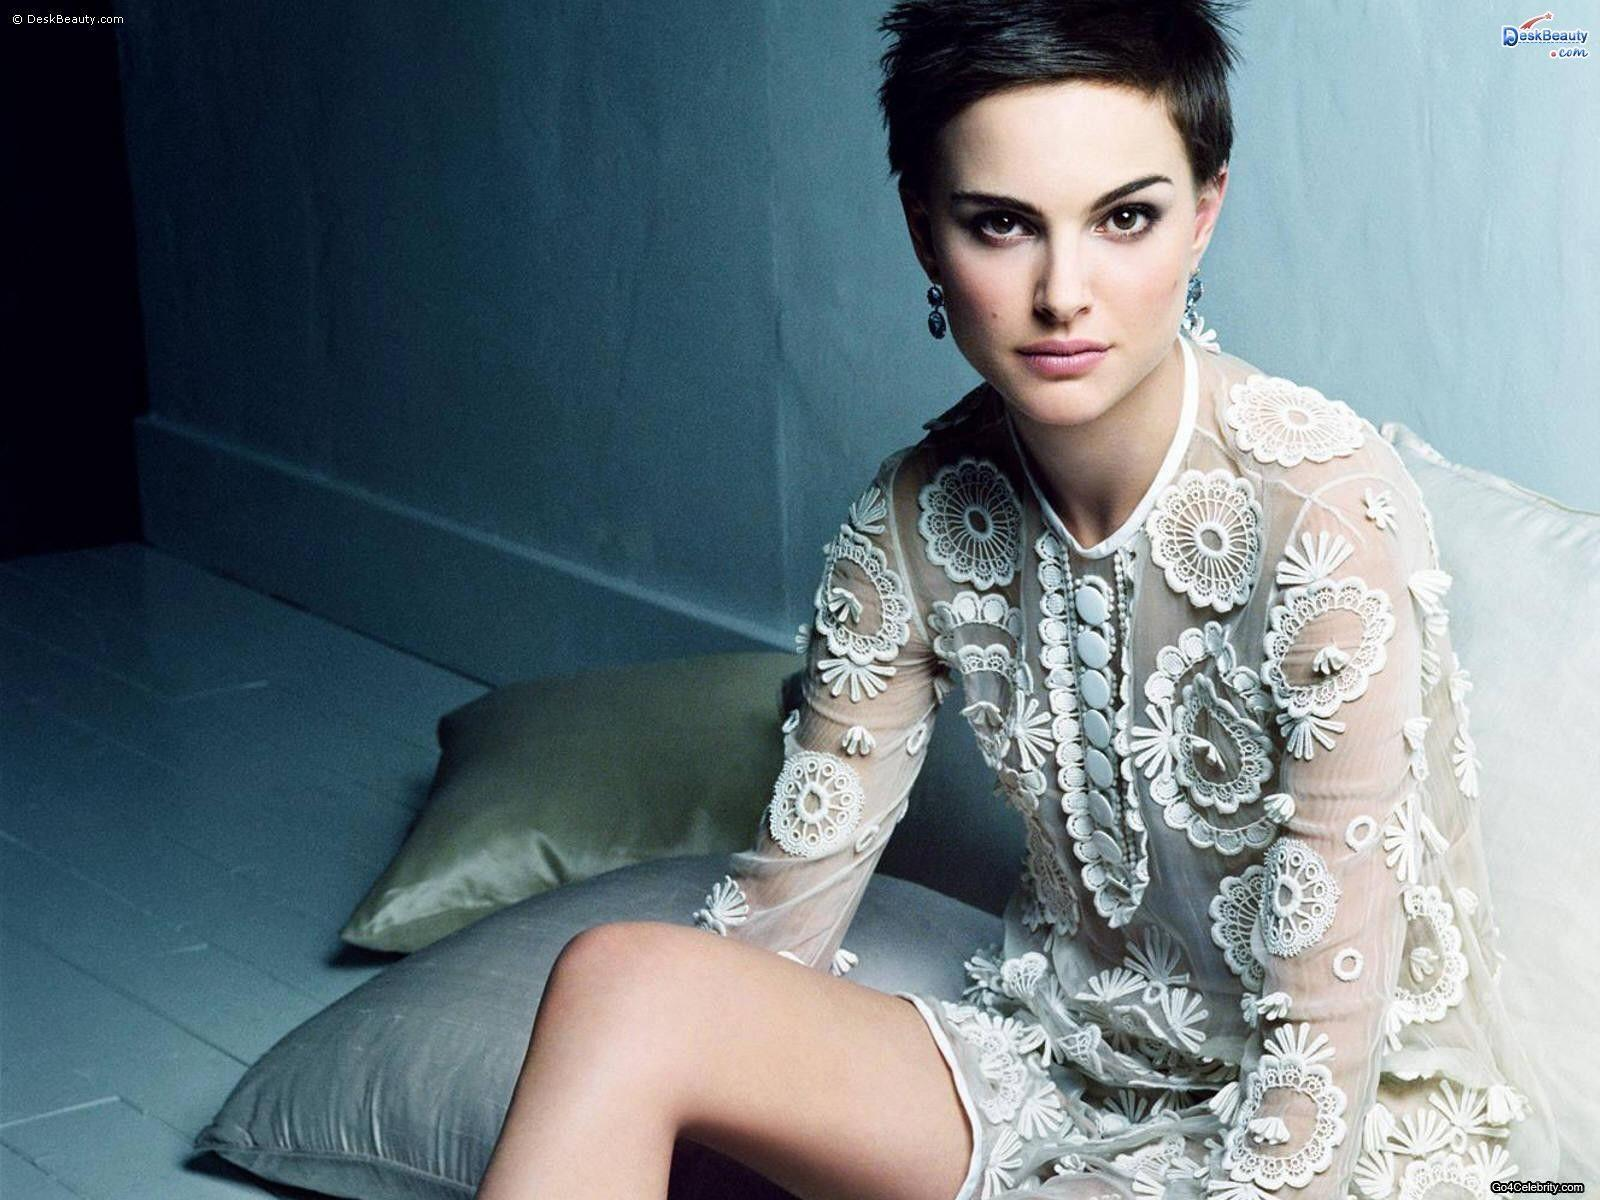 Cute Natalie Portman HD Wallpapers - HD Wallpapers Inn